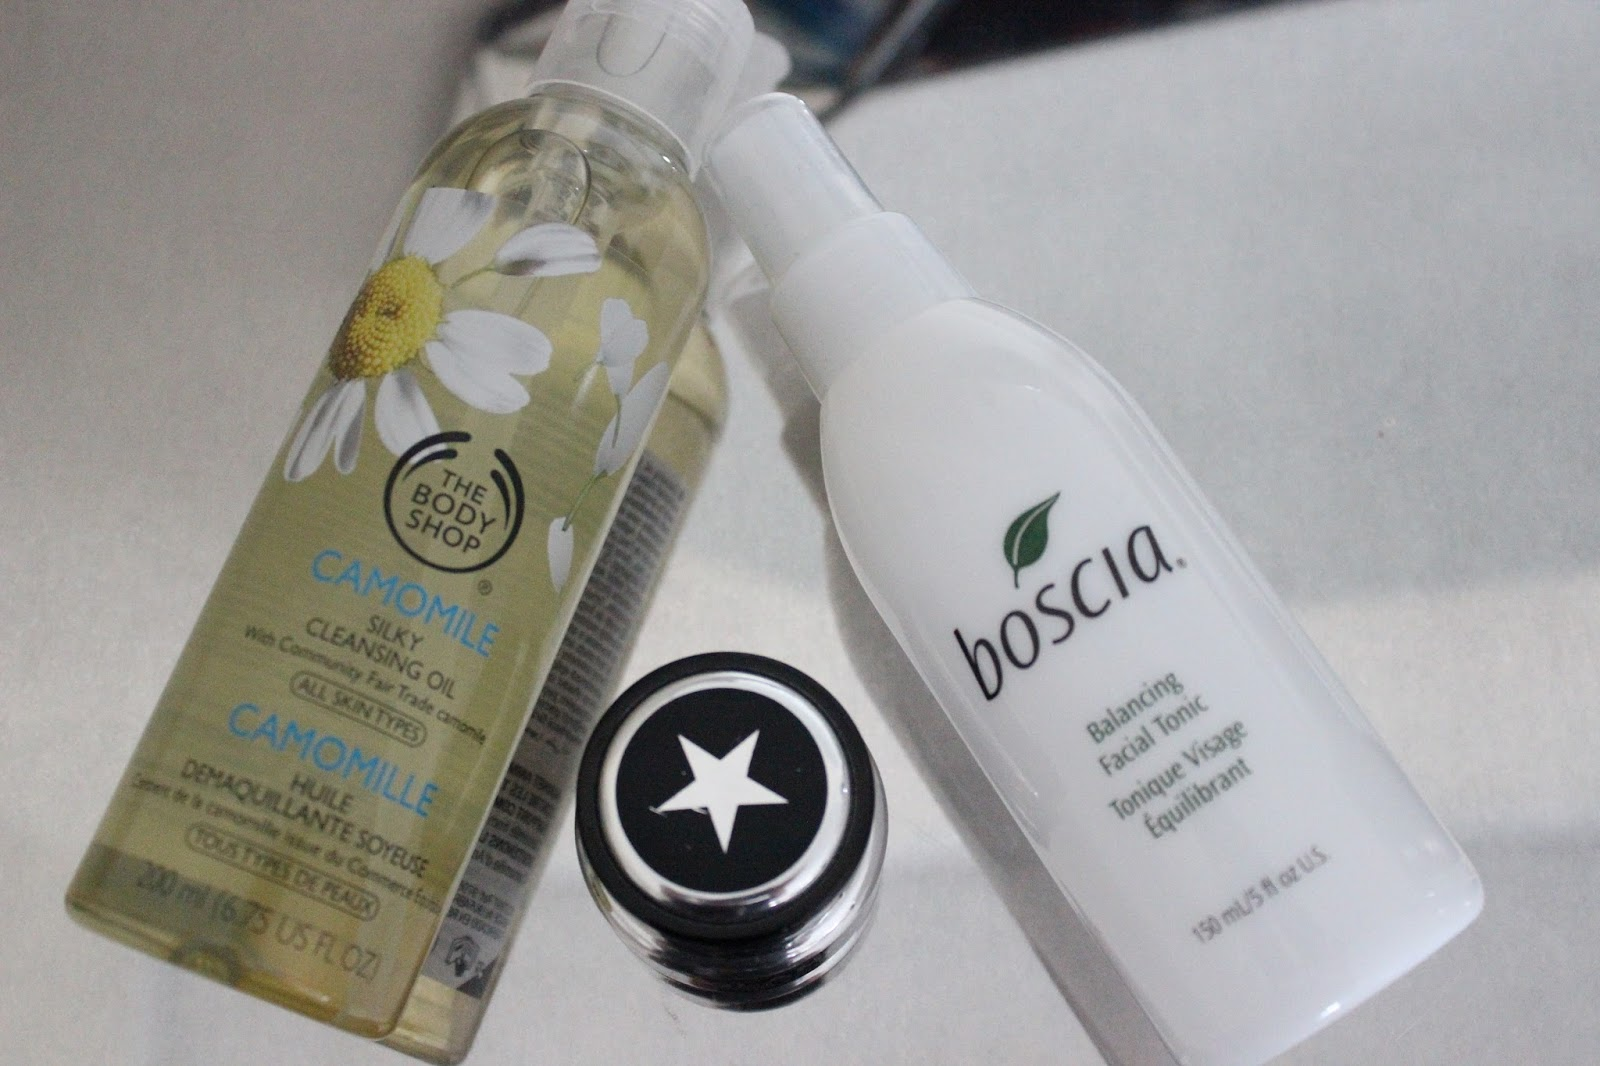 Beauty Favourites 2014 - The Body Shop Chamomile Silky Cleansing Oil, Glamglow Youth Mud, Boscia Balancing Facial Tonic